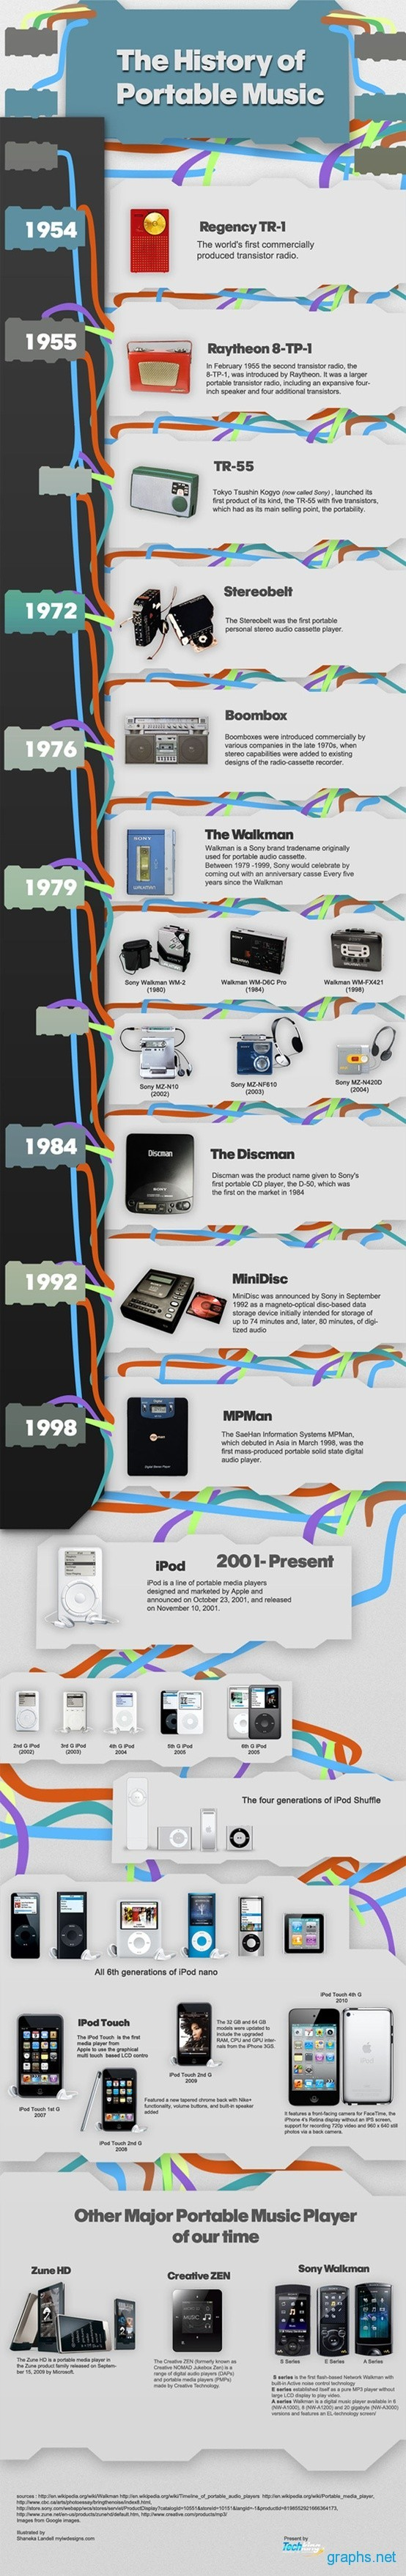 Portable Music History Timeline